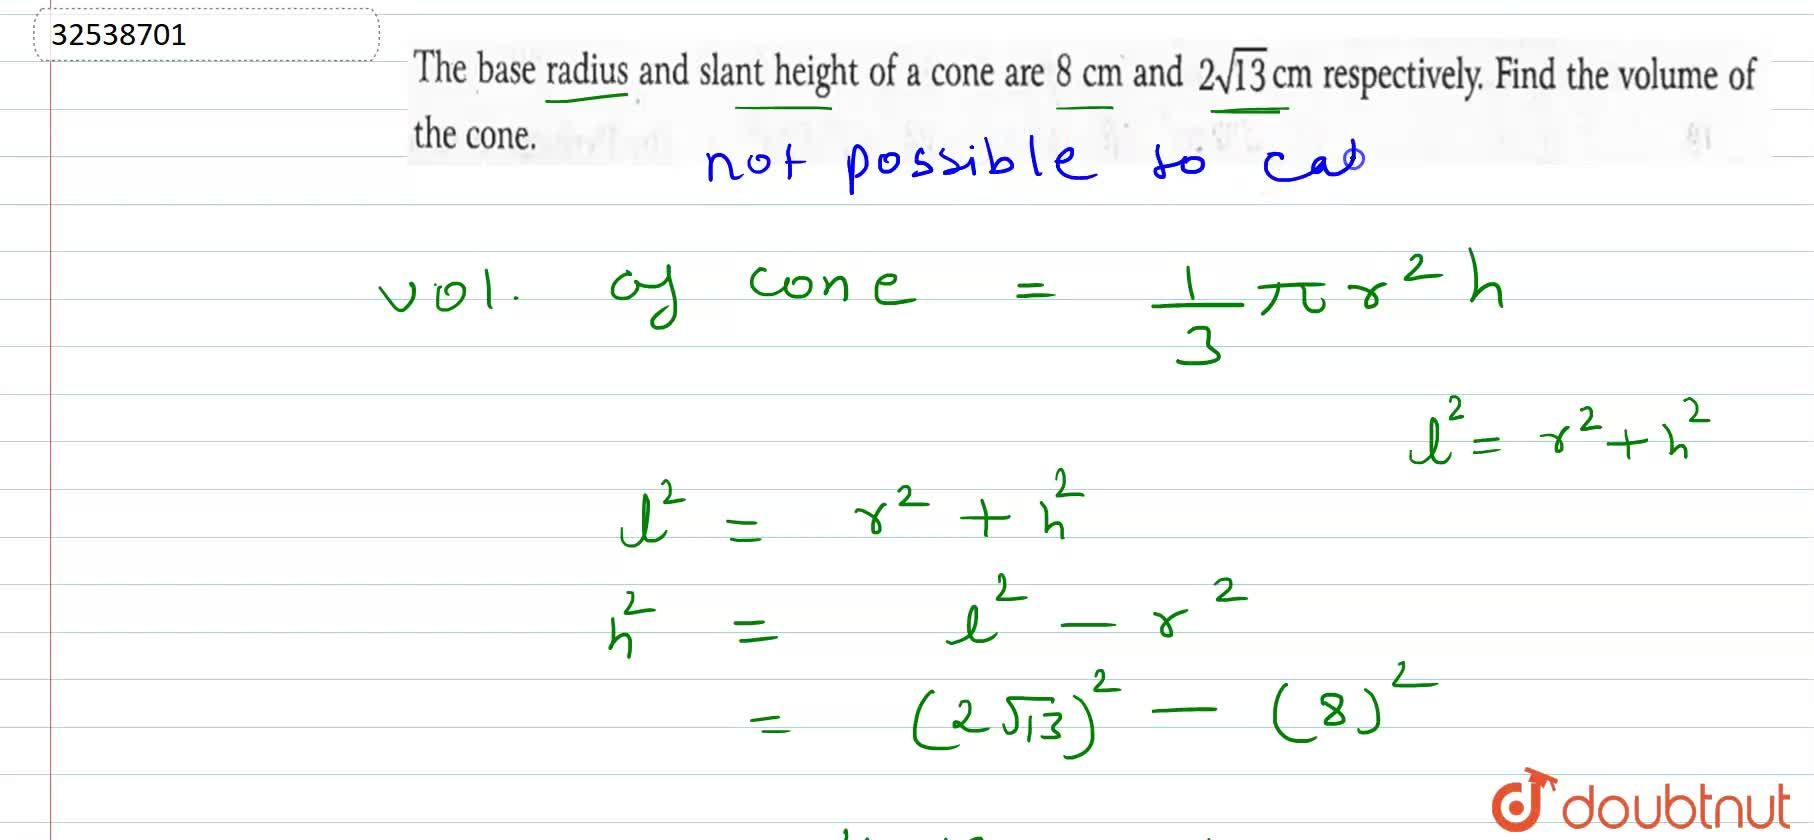 The base radius and slant height of a cone are 8 cm and 2 sqrt(13)cm respectively. Find the volume of the cone.